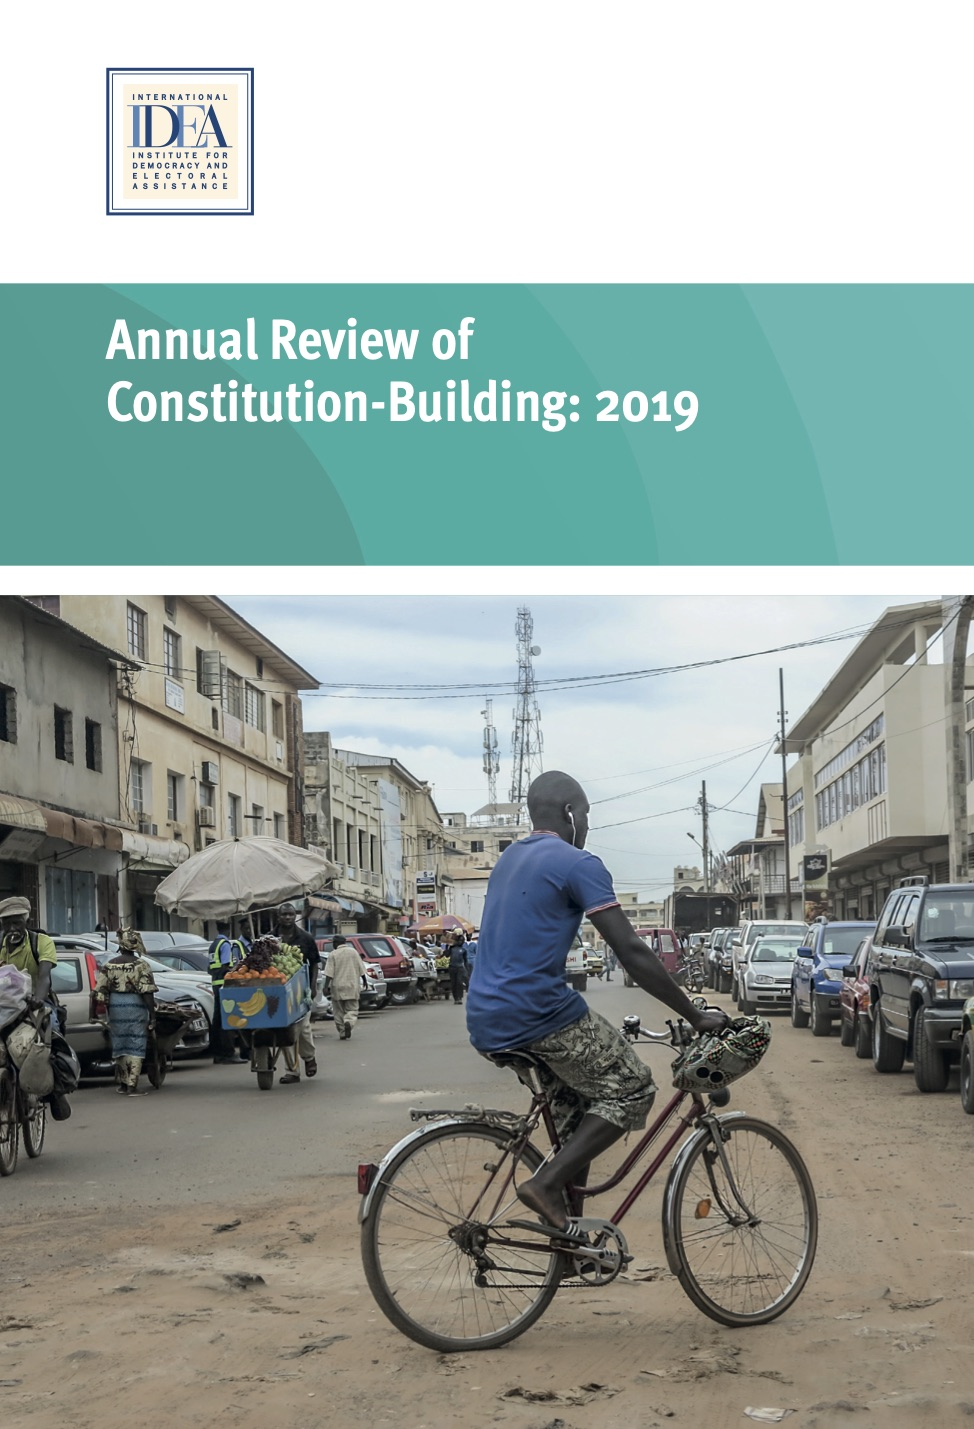 Annual Review of Constitution Building: 2019